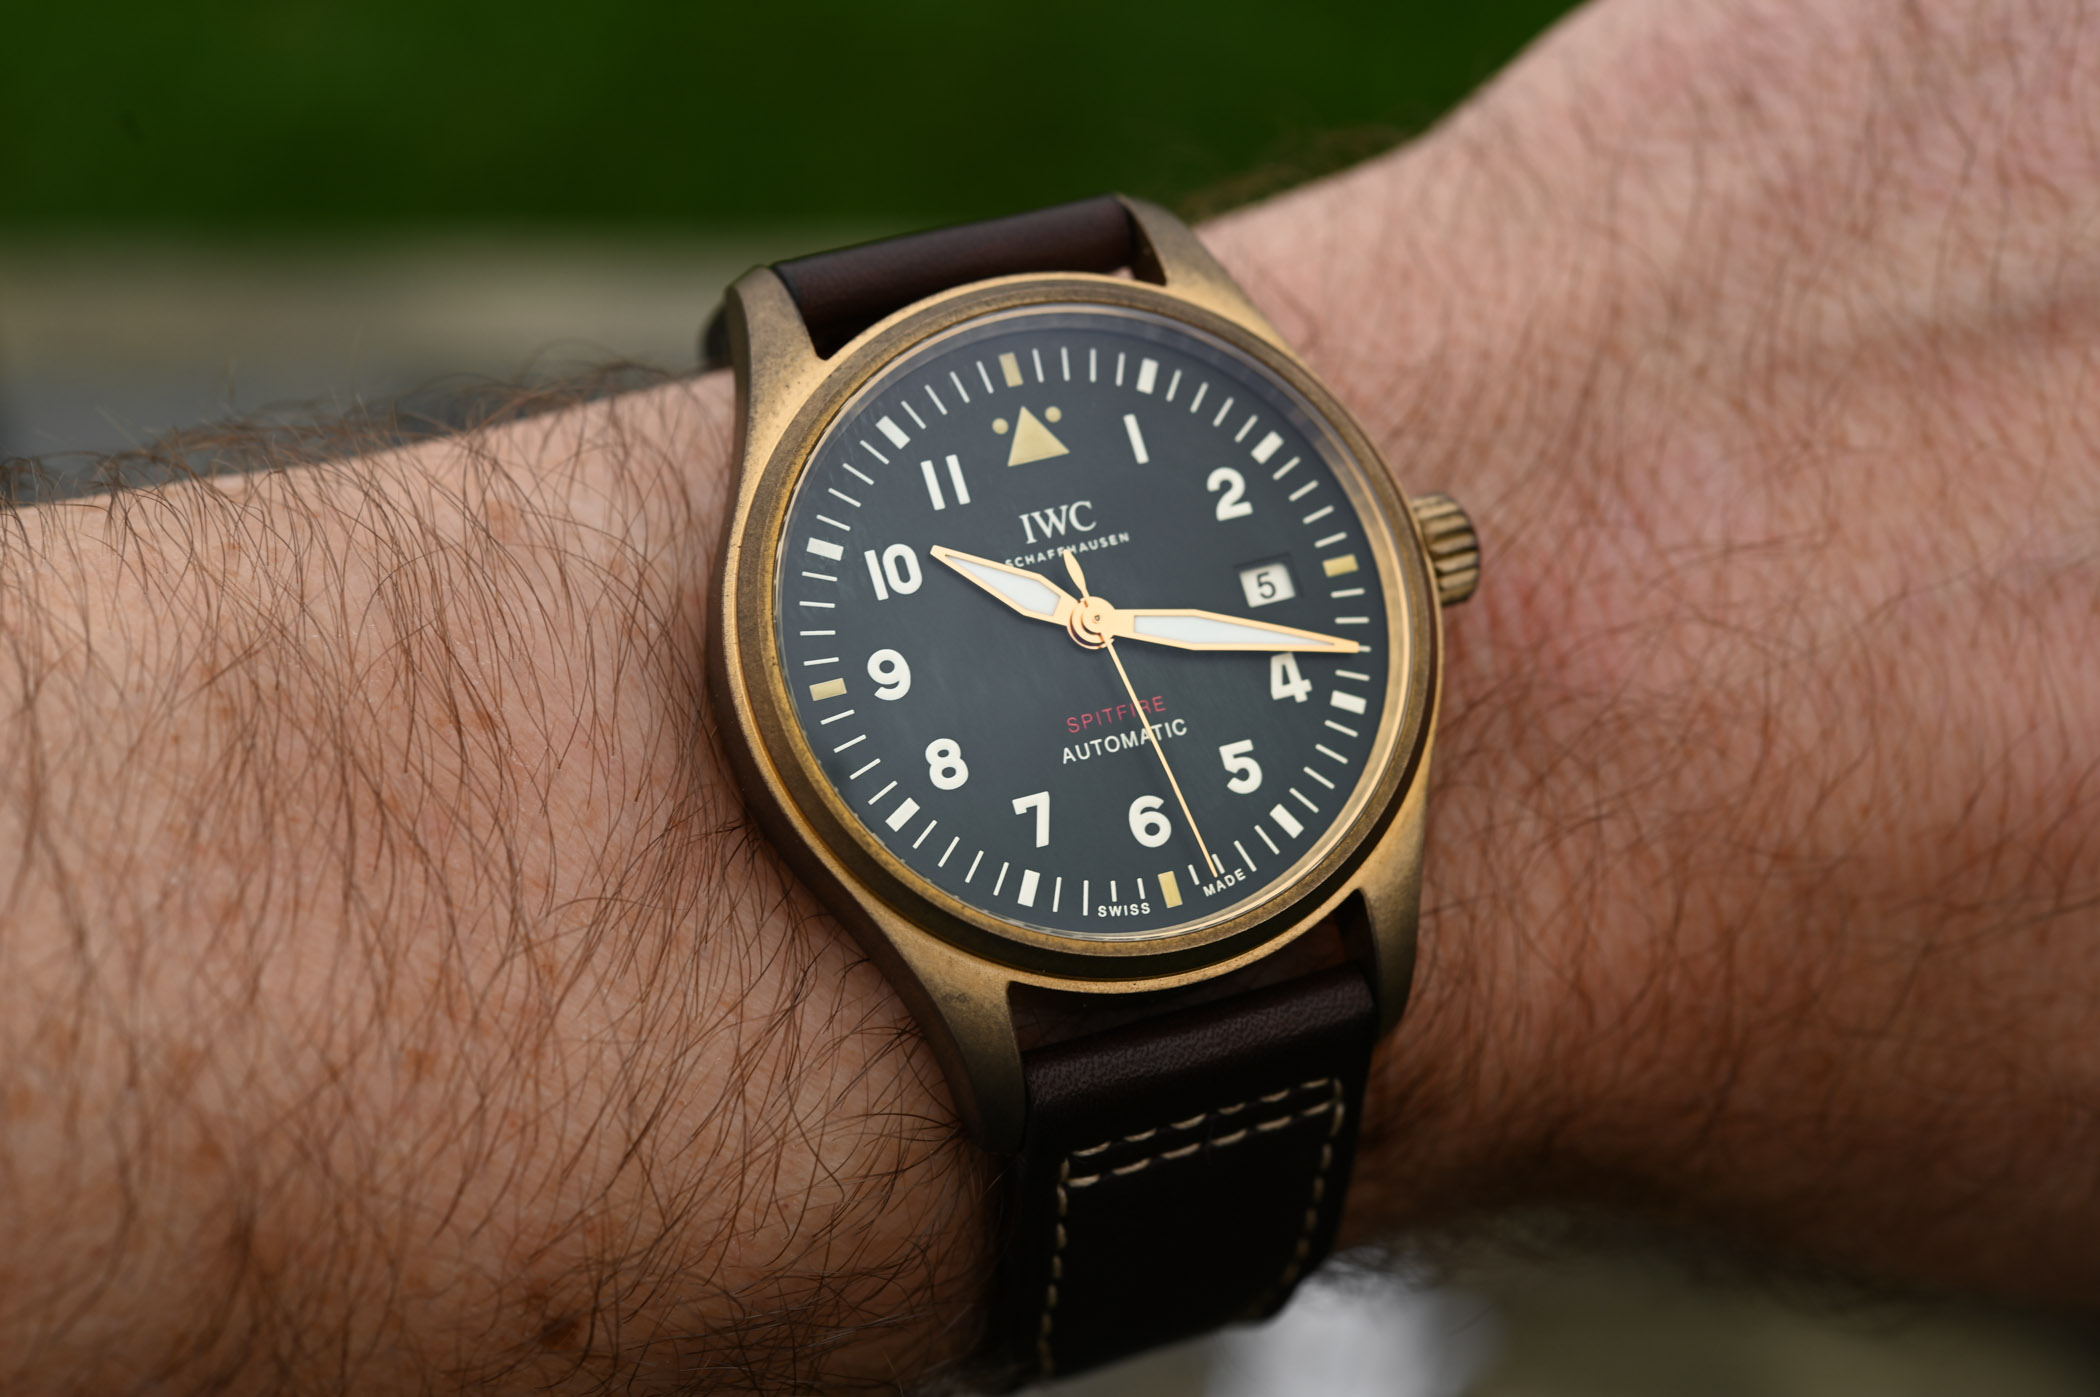 biwc-pilots-watch-automatic-spitfire-bronze